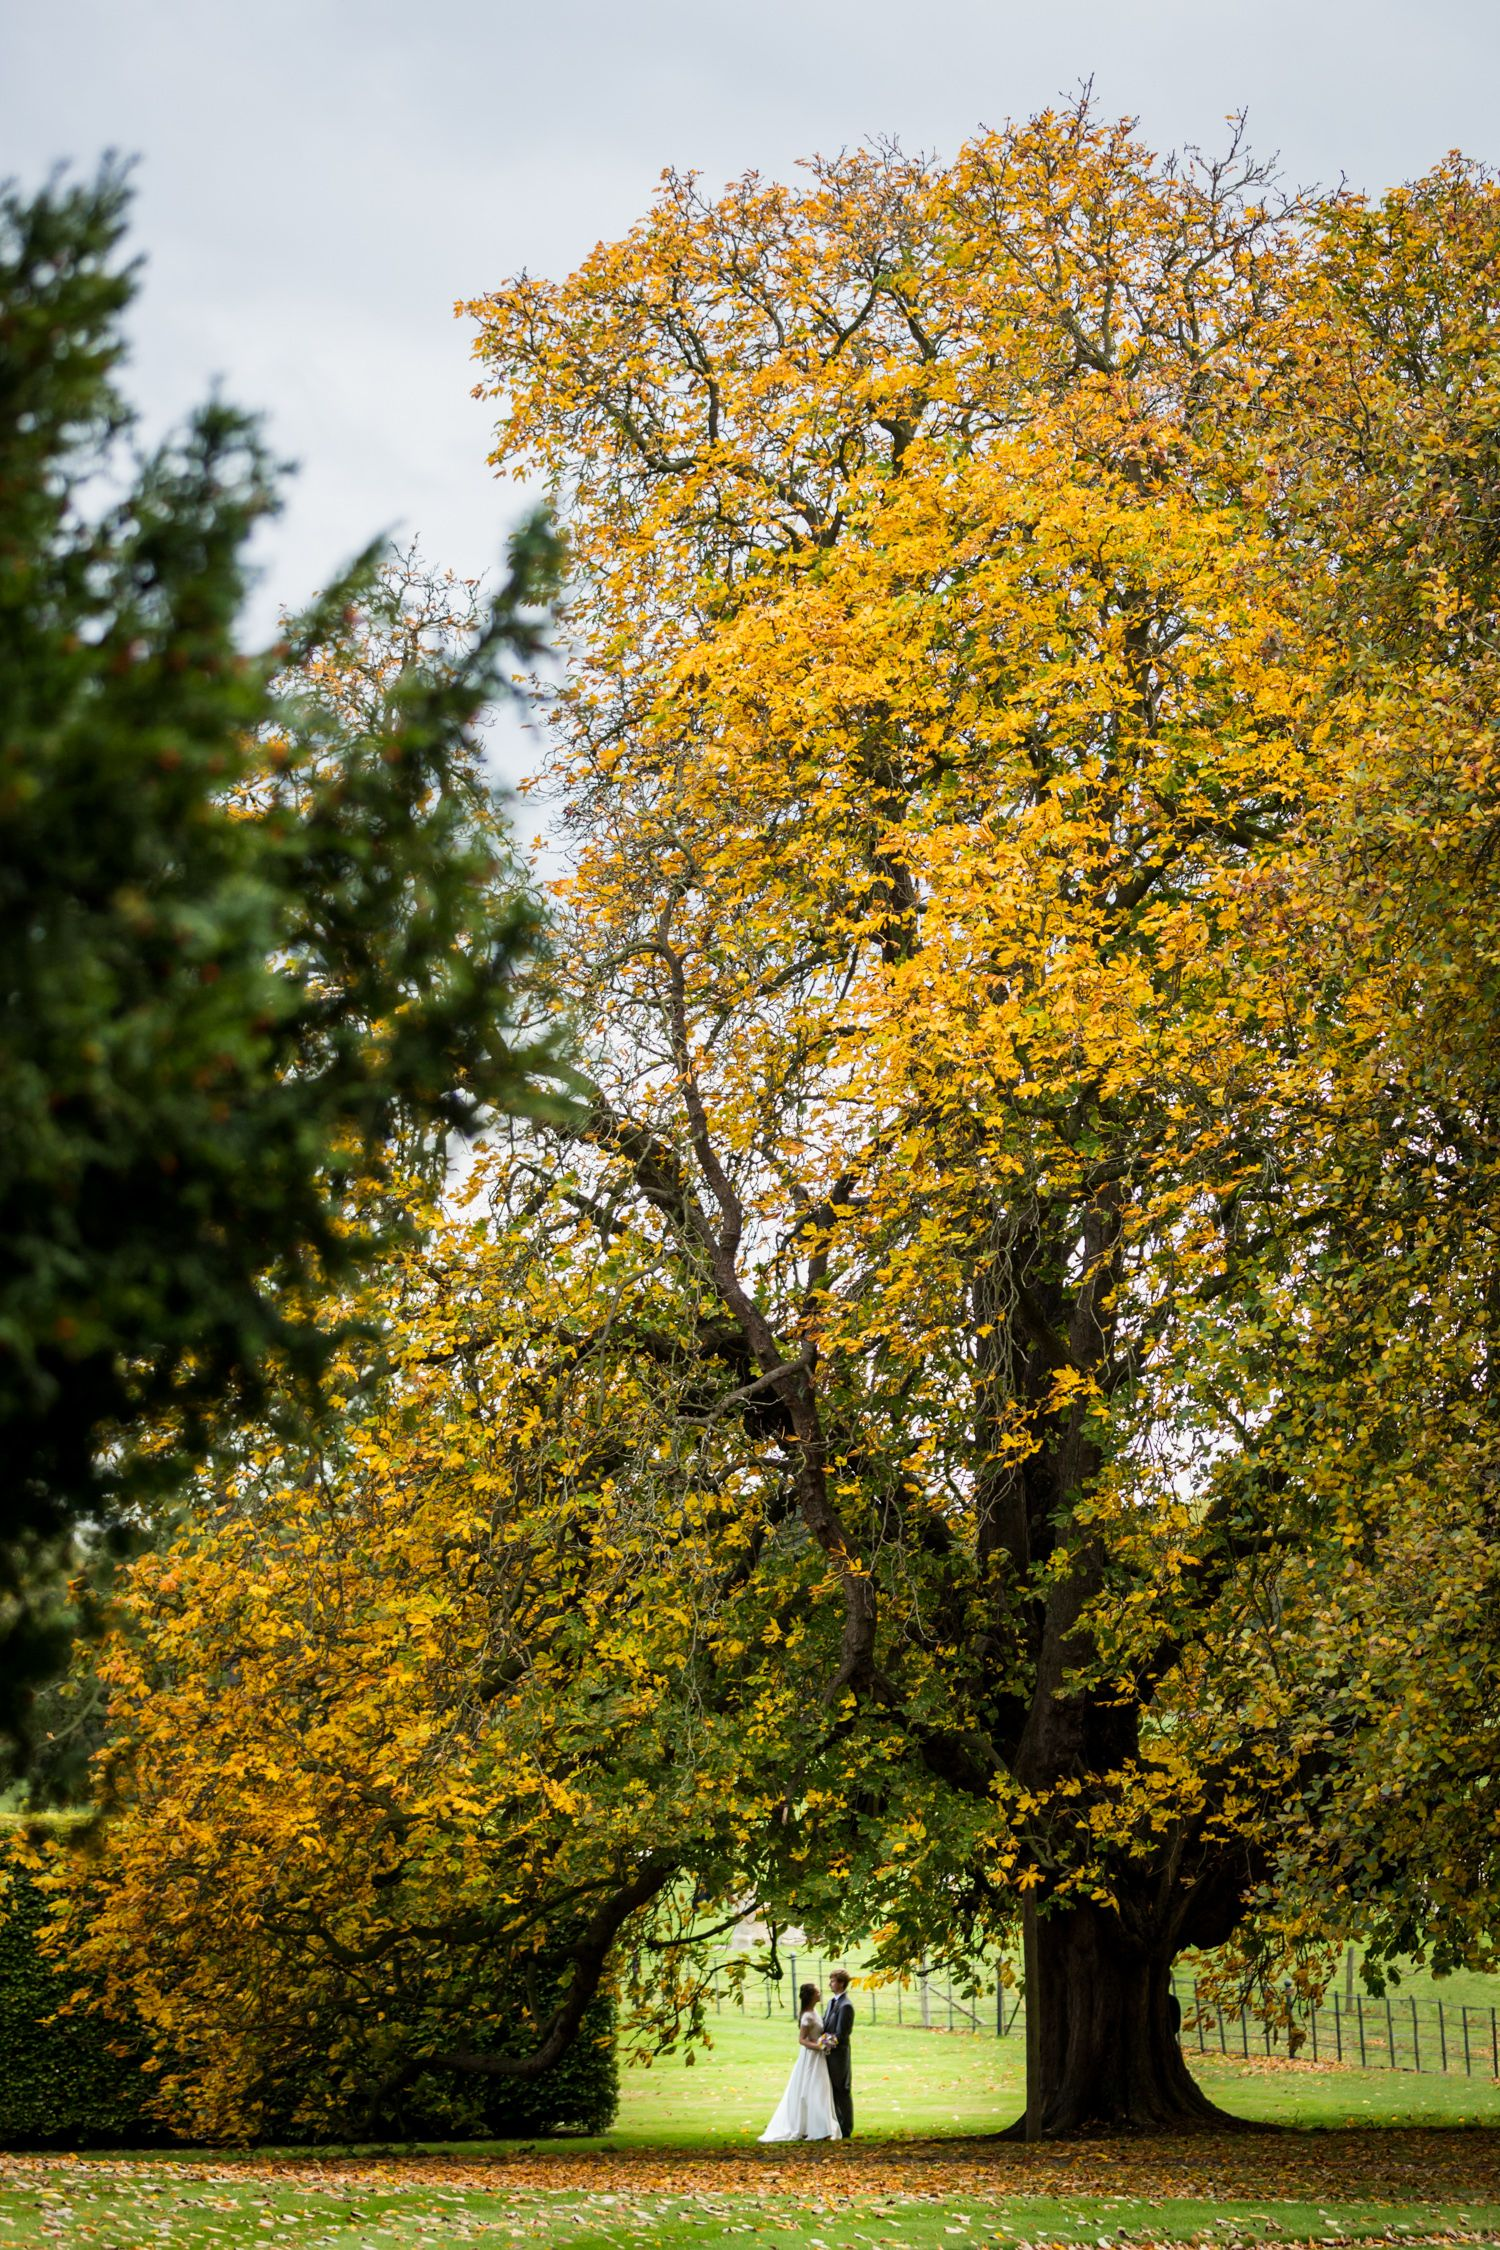 The Horse Chestnut Makes A Fabulous Backdrop To An Autumn Wedding Image By Kirsty Matts Yorkshire Wedding Photographer Wedding Inspiration Fall Autumn Wedding